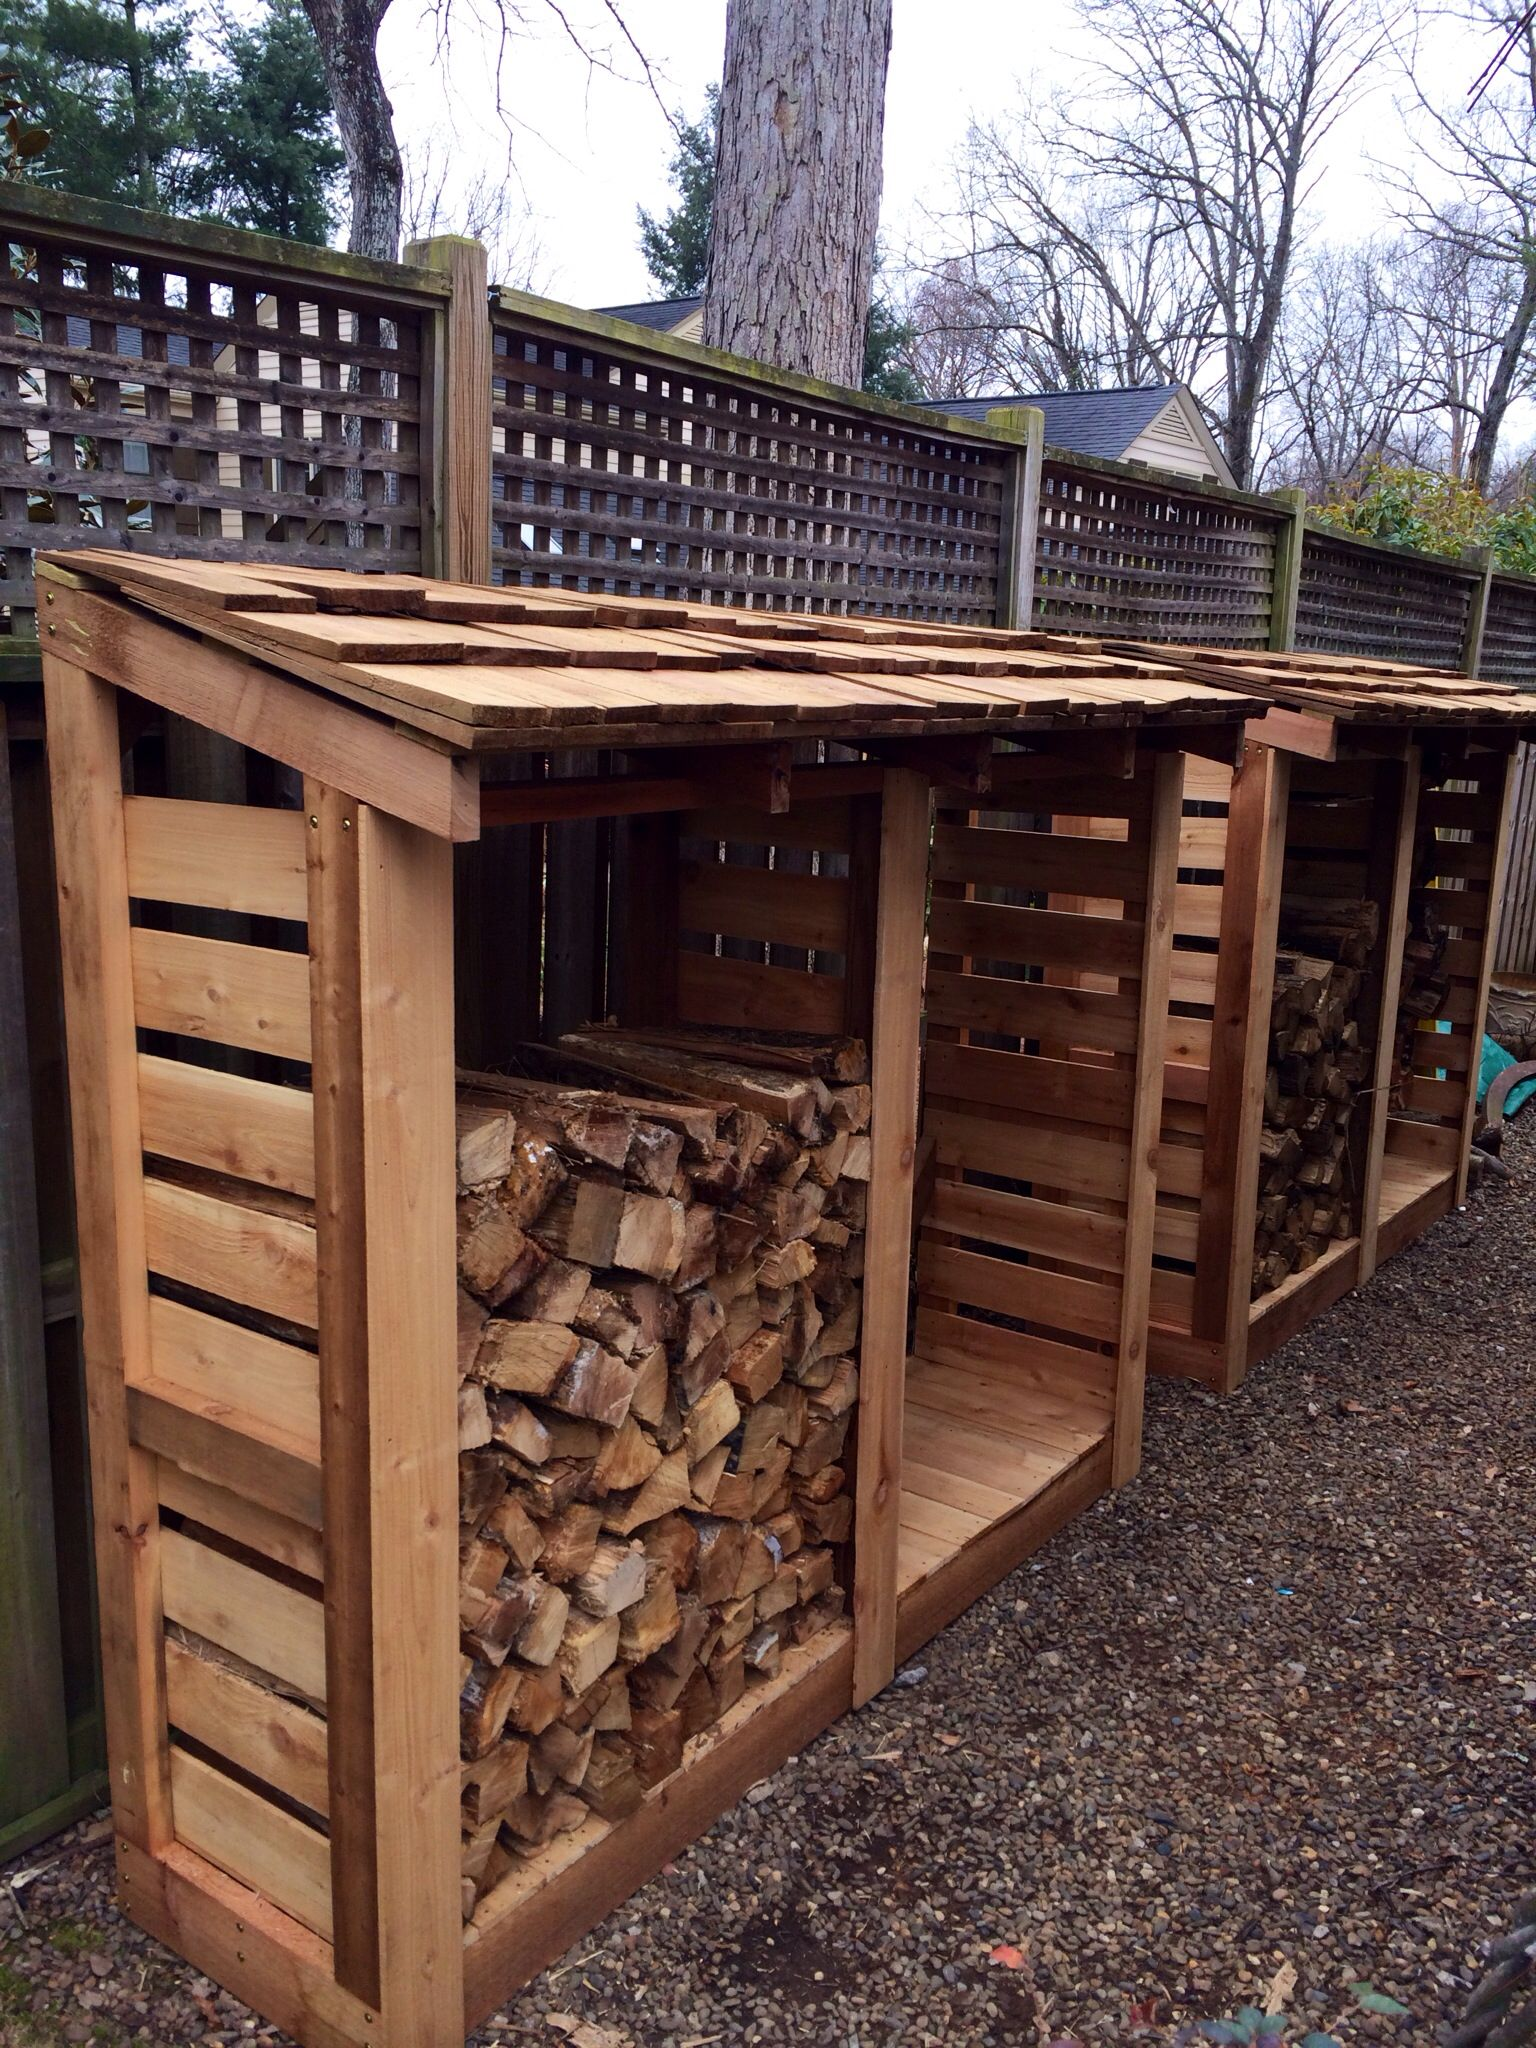 I built these red cedar firewood storage bins for our backyard. I'm so